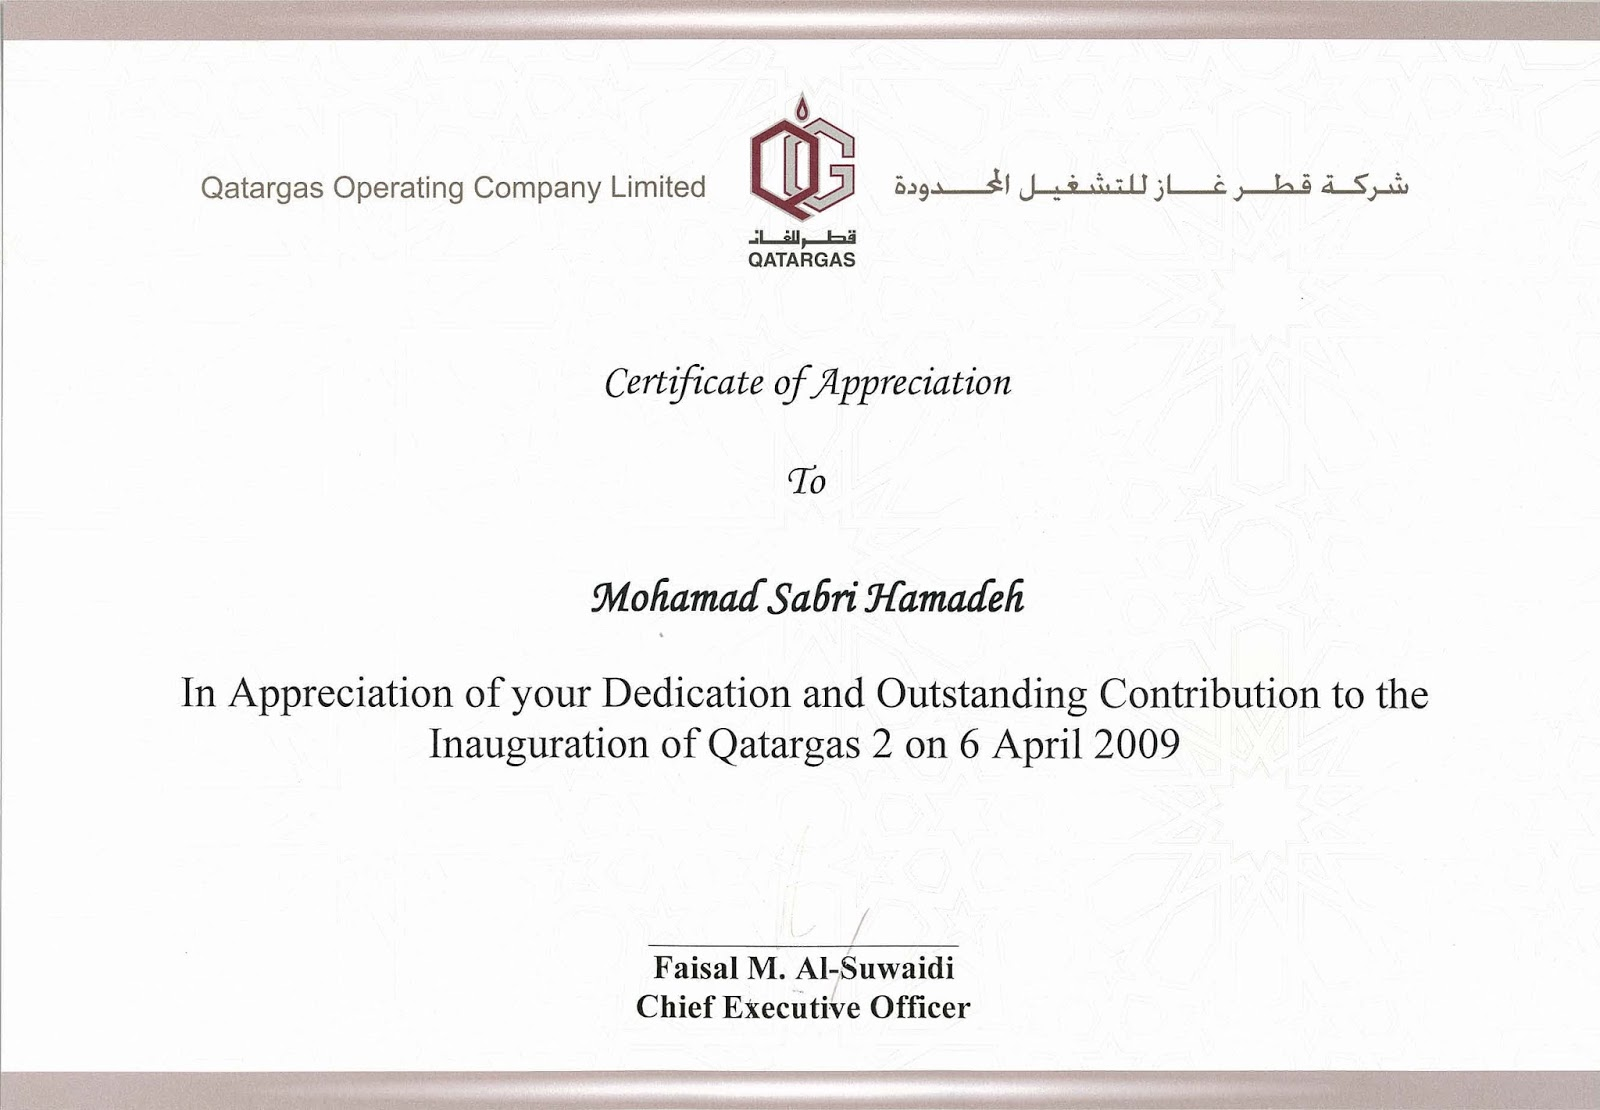 mohamad sabri hamadeh appreciation certificate for outstanding